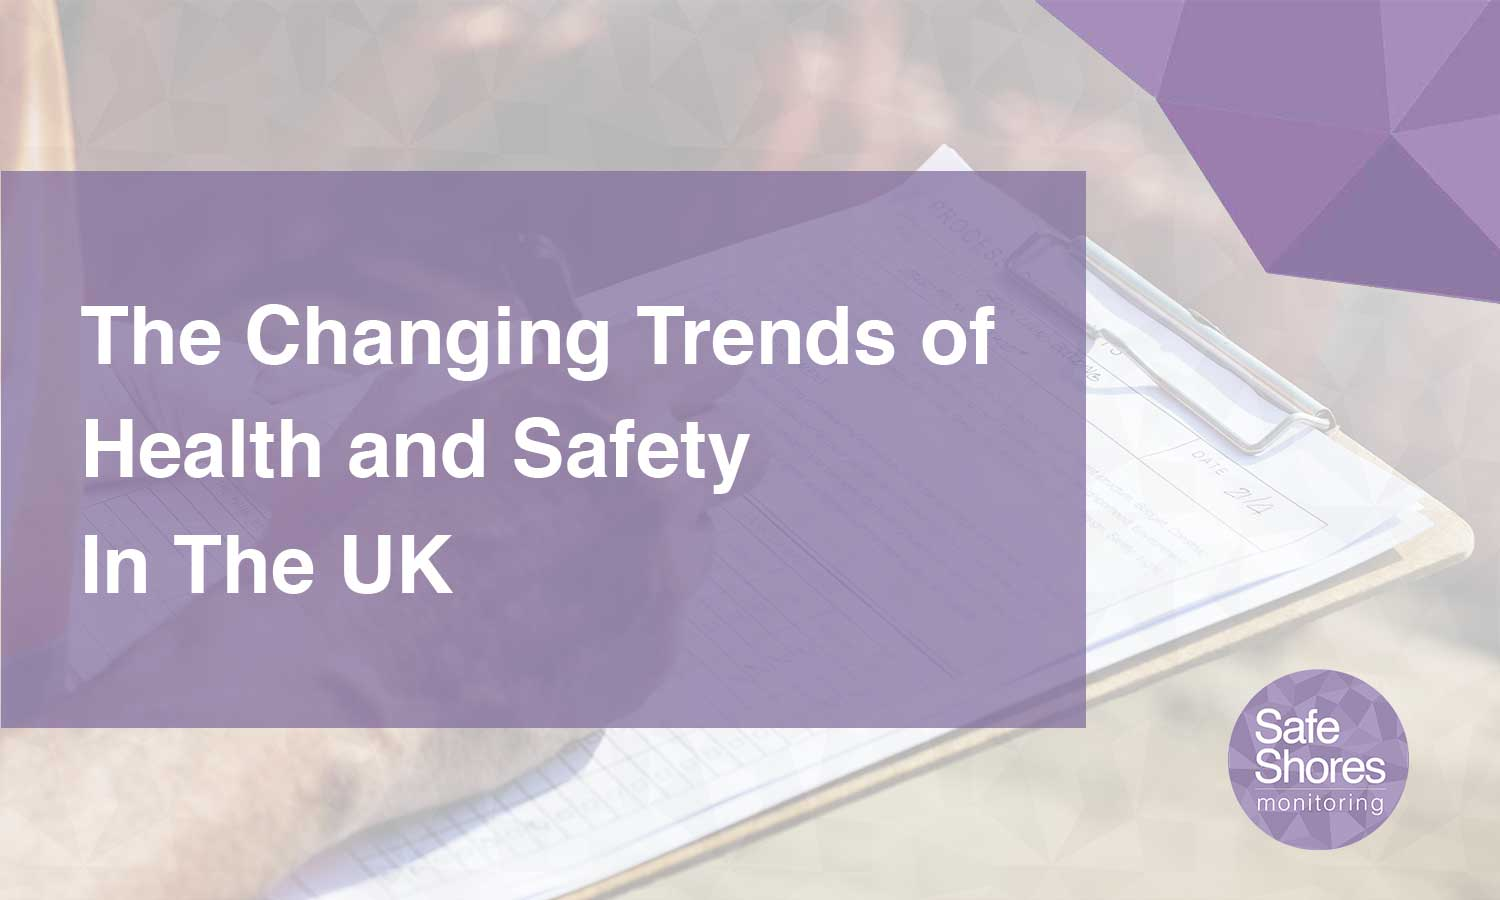 The Changing Trends of Health and Safety in the UK